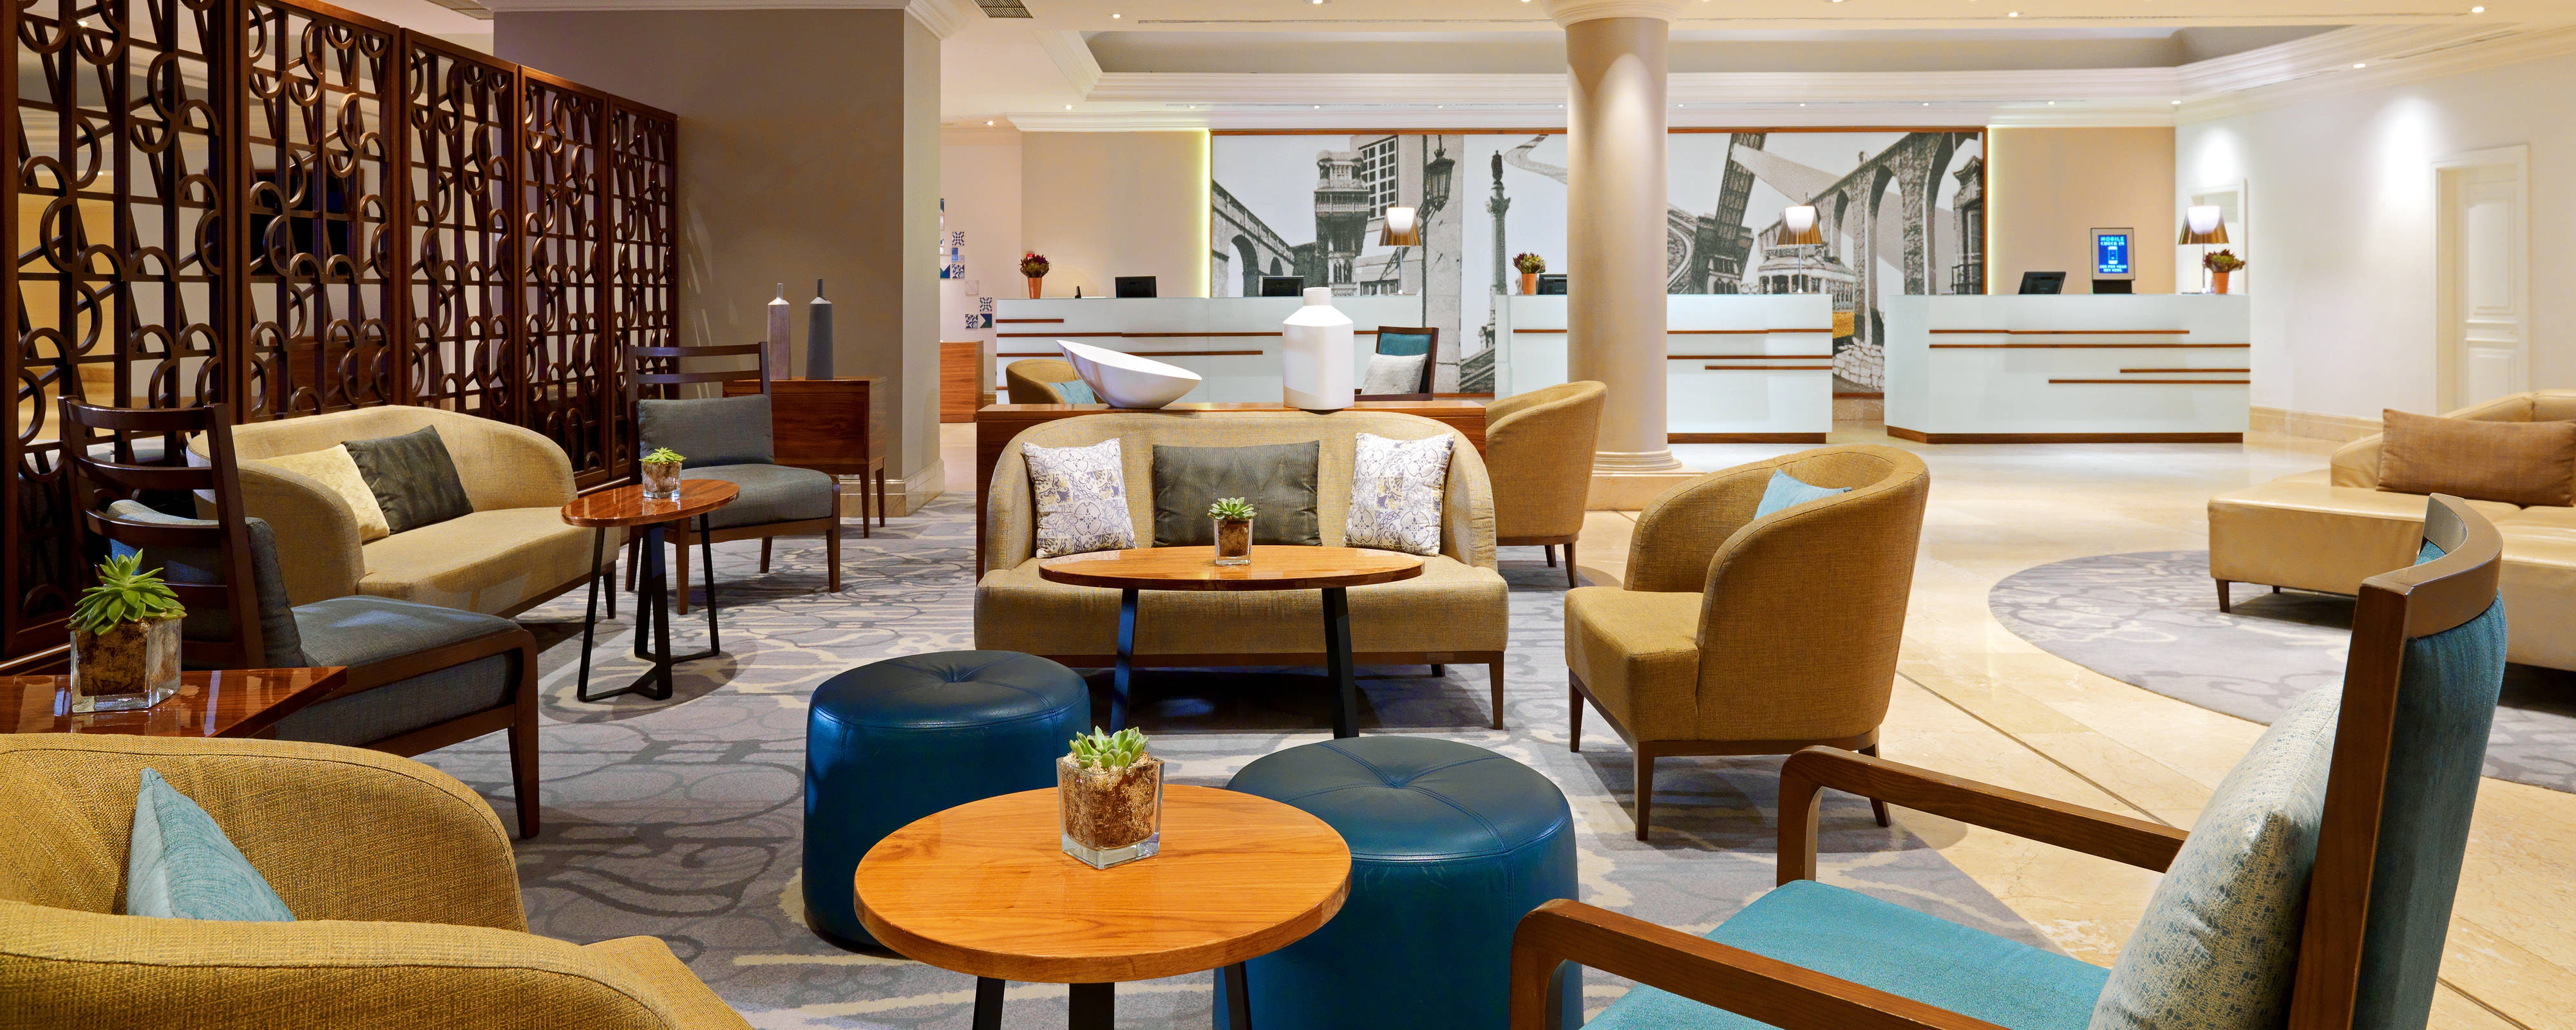 Lisbon marriott hotel a 4 star hotel in lisbon portugal - 4 star hotels in lisbon with swimming pool ...